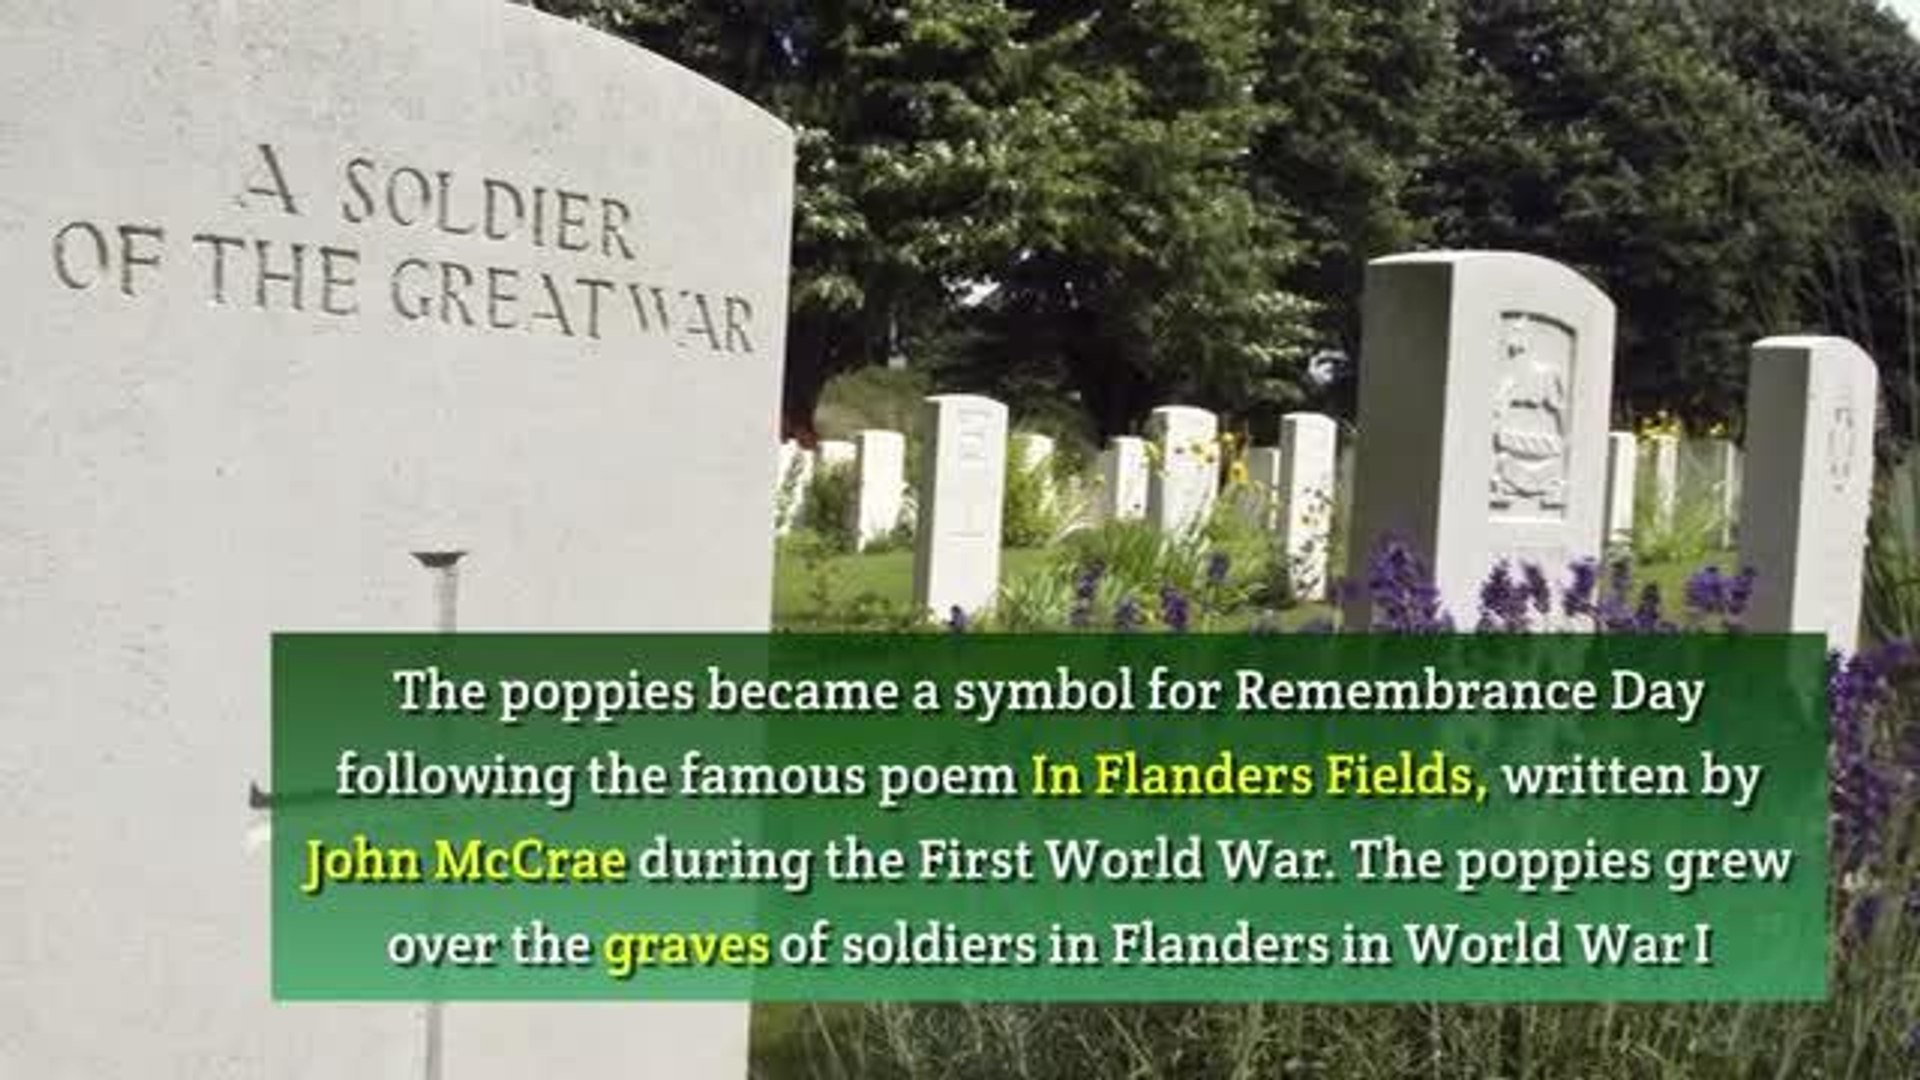 VIDEO: Remembrance Day